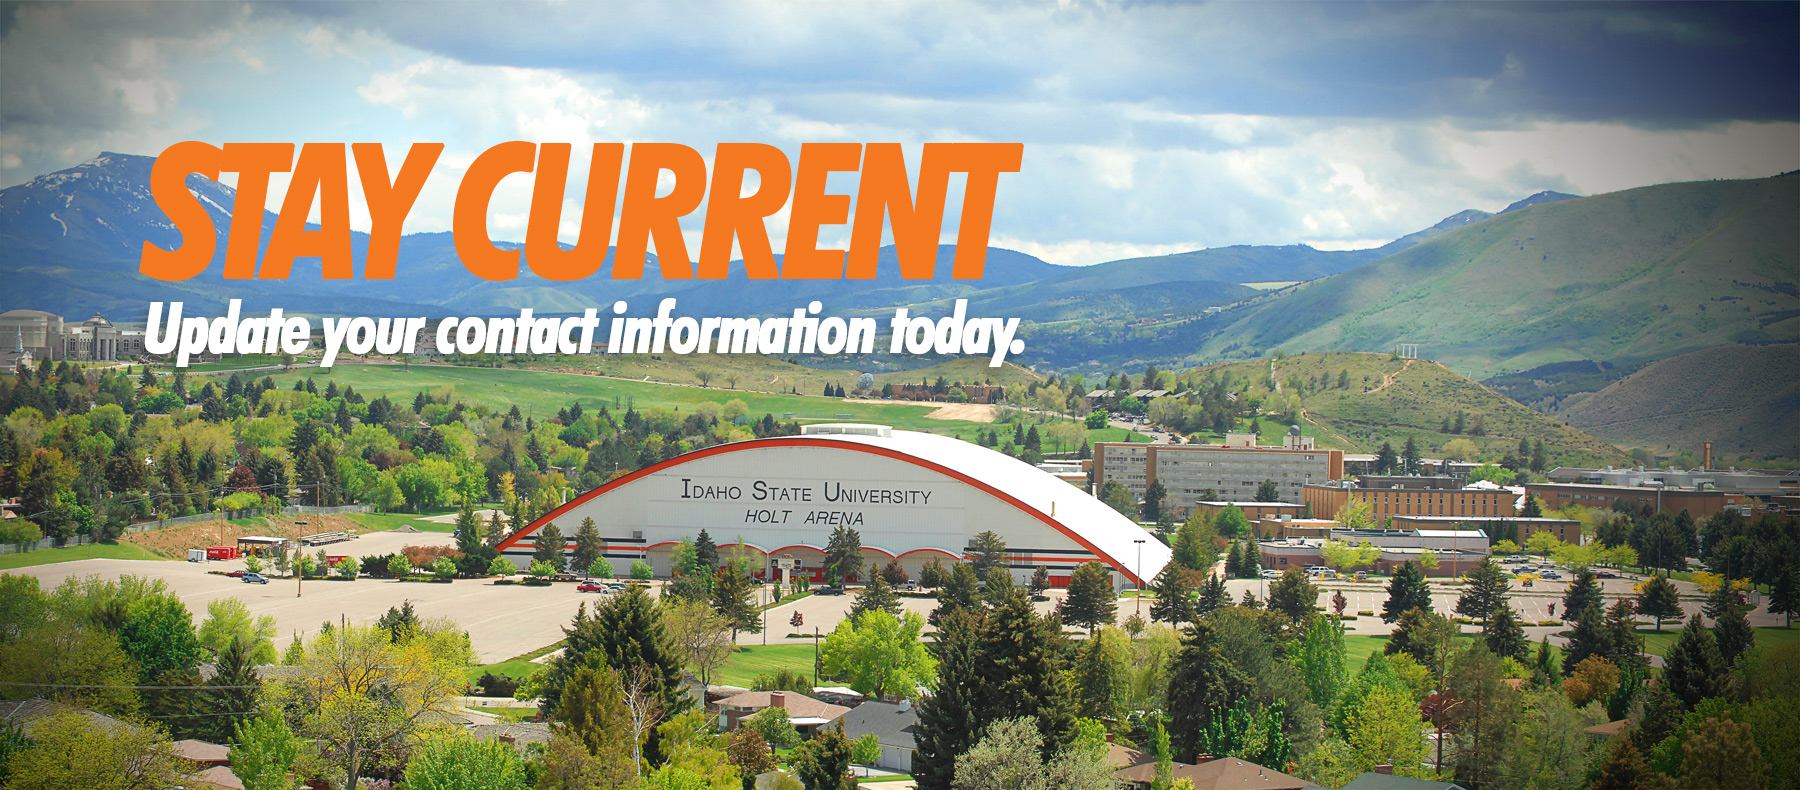 Stay Current - Update your contact information today.